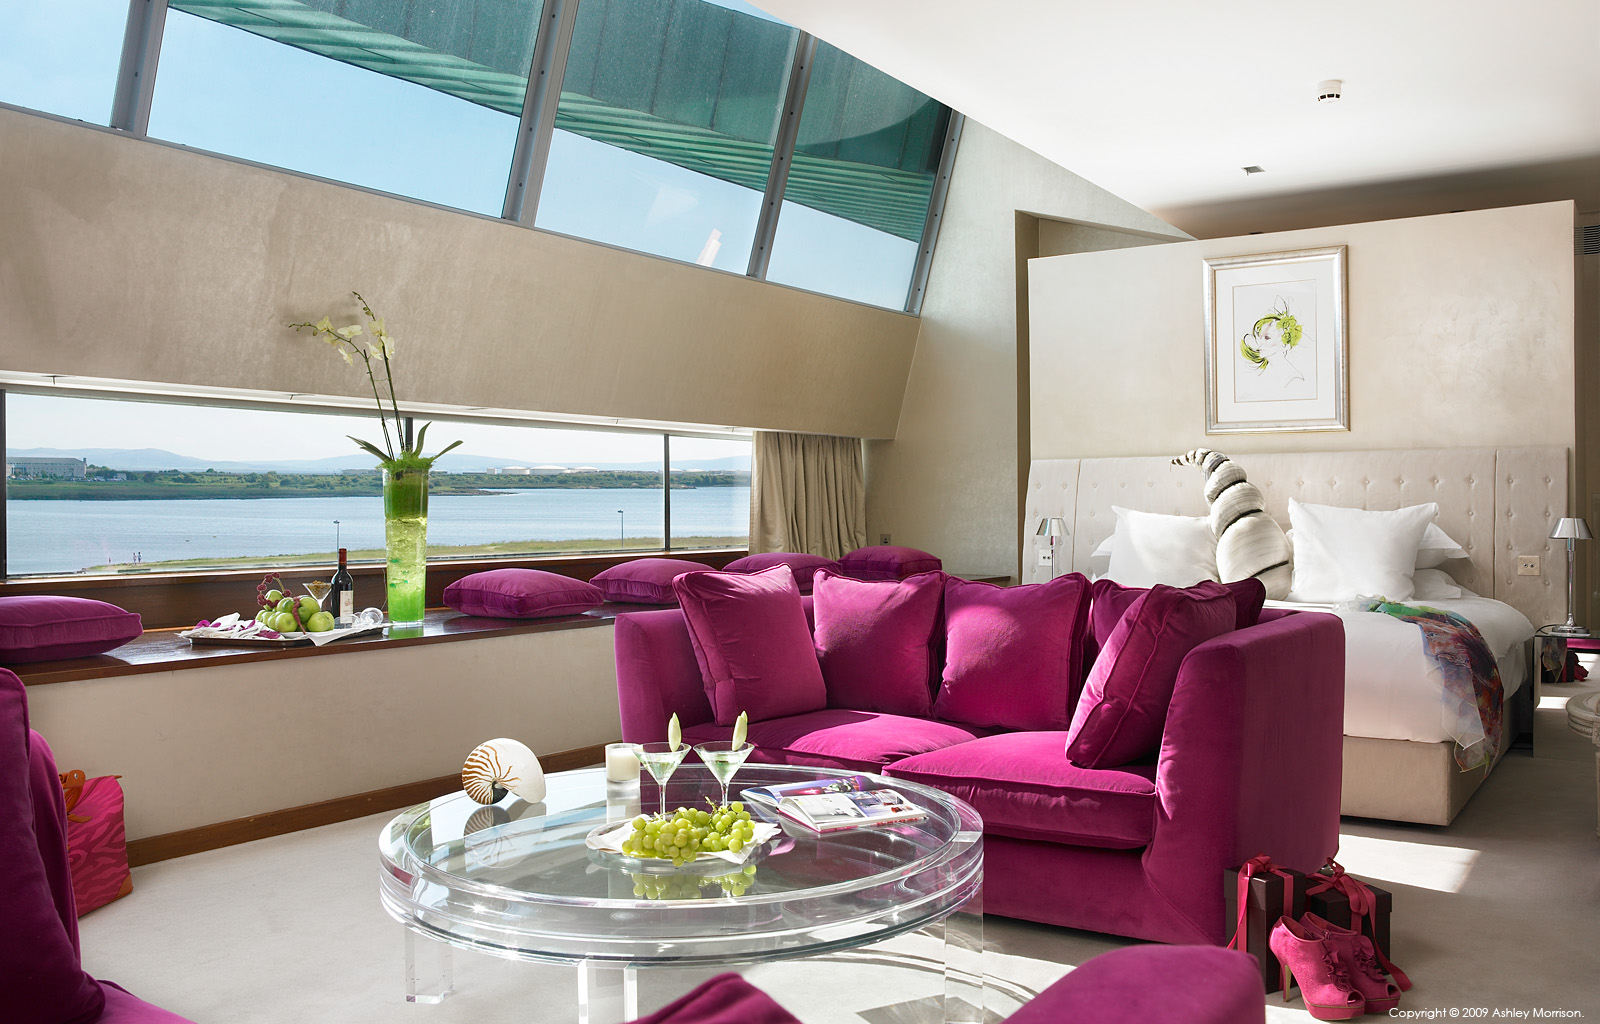 Specialty Suite at the g Hotel in Galway by Ashley Morrison.